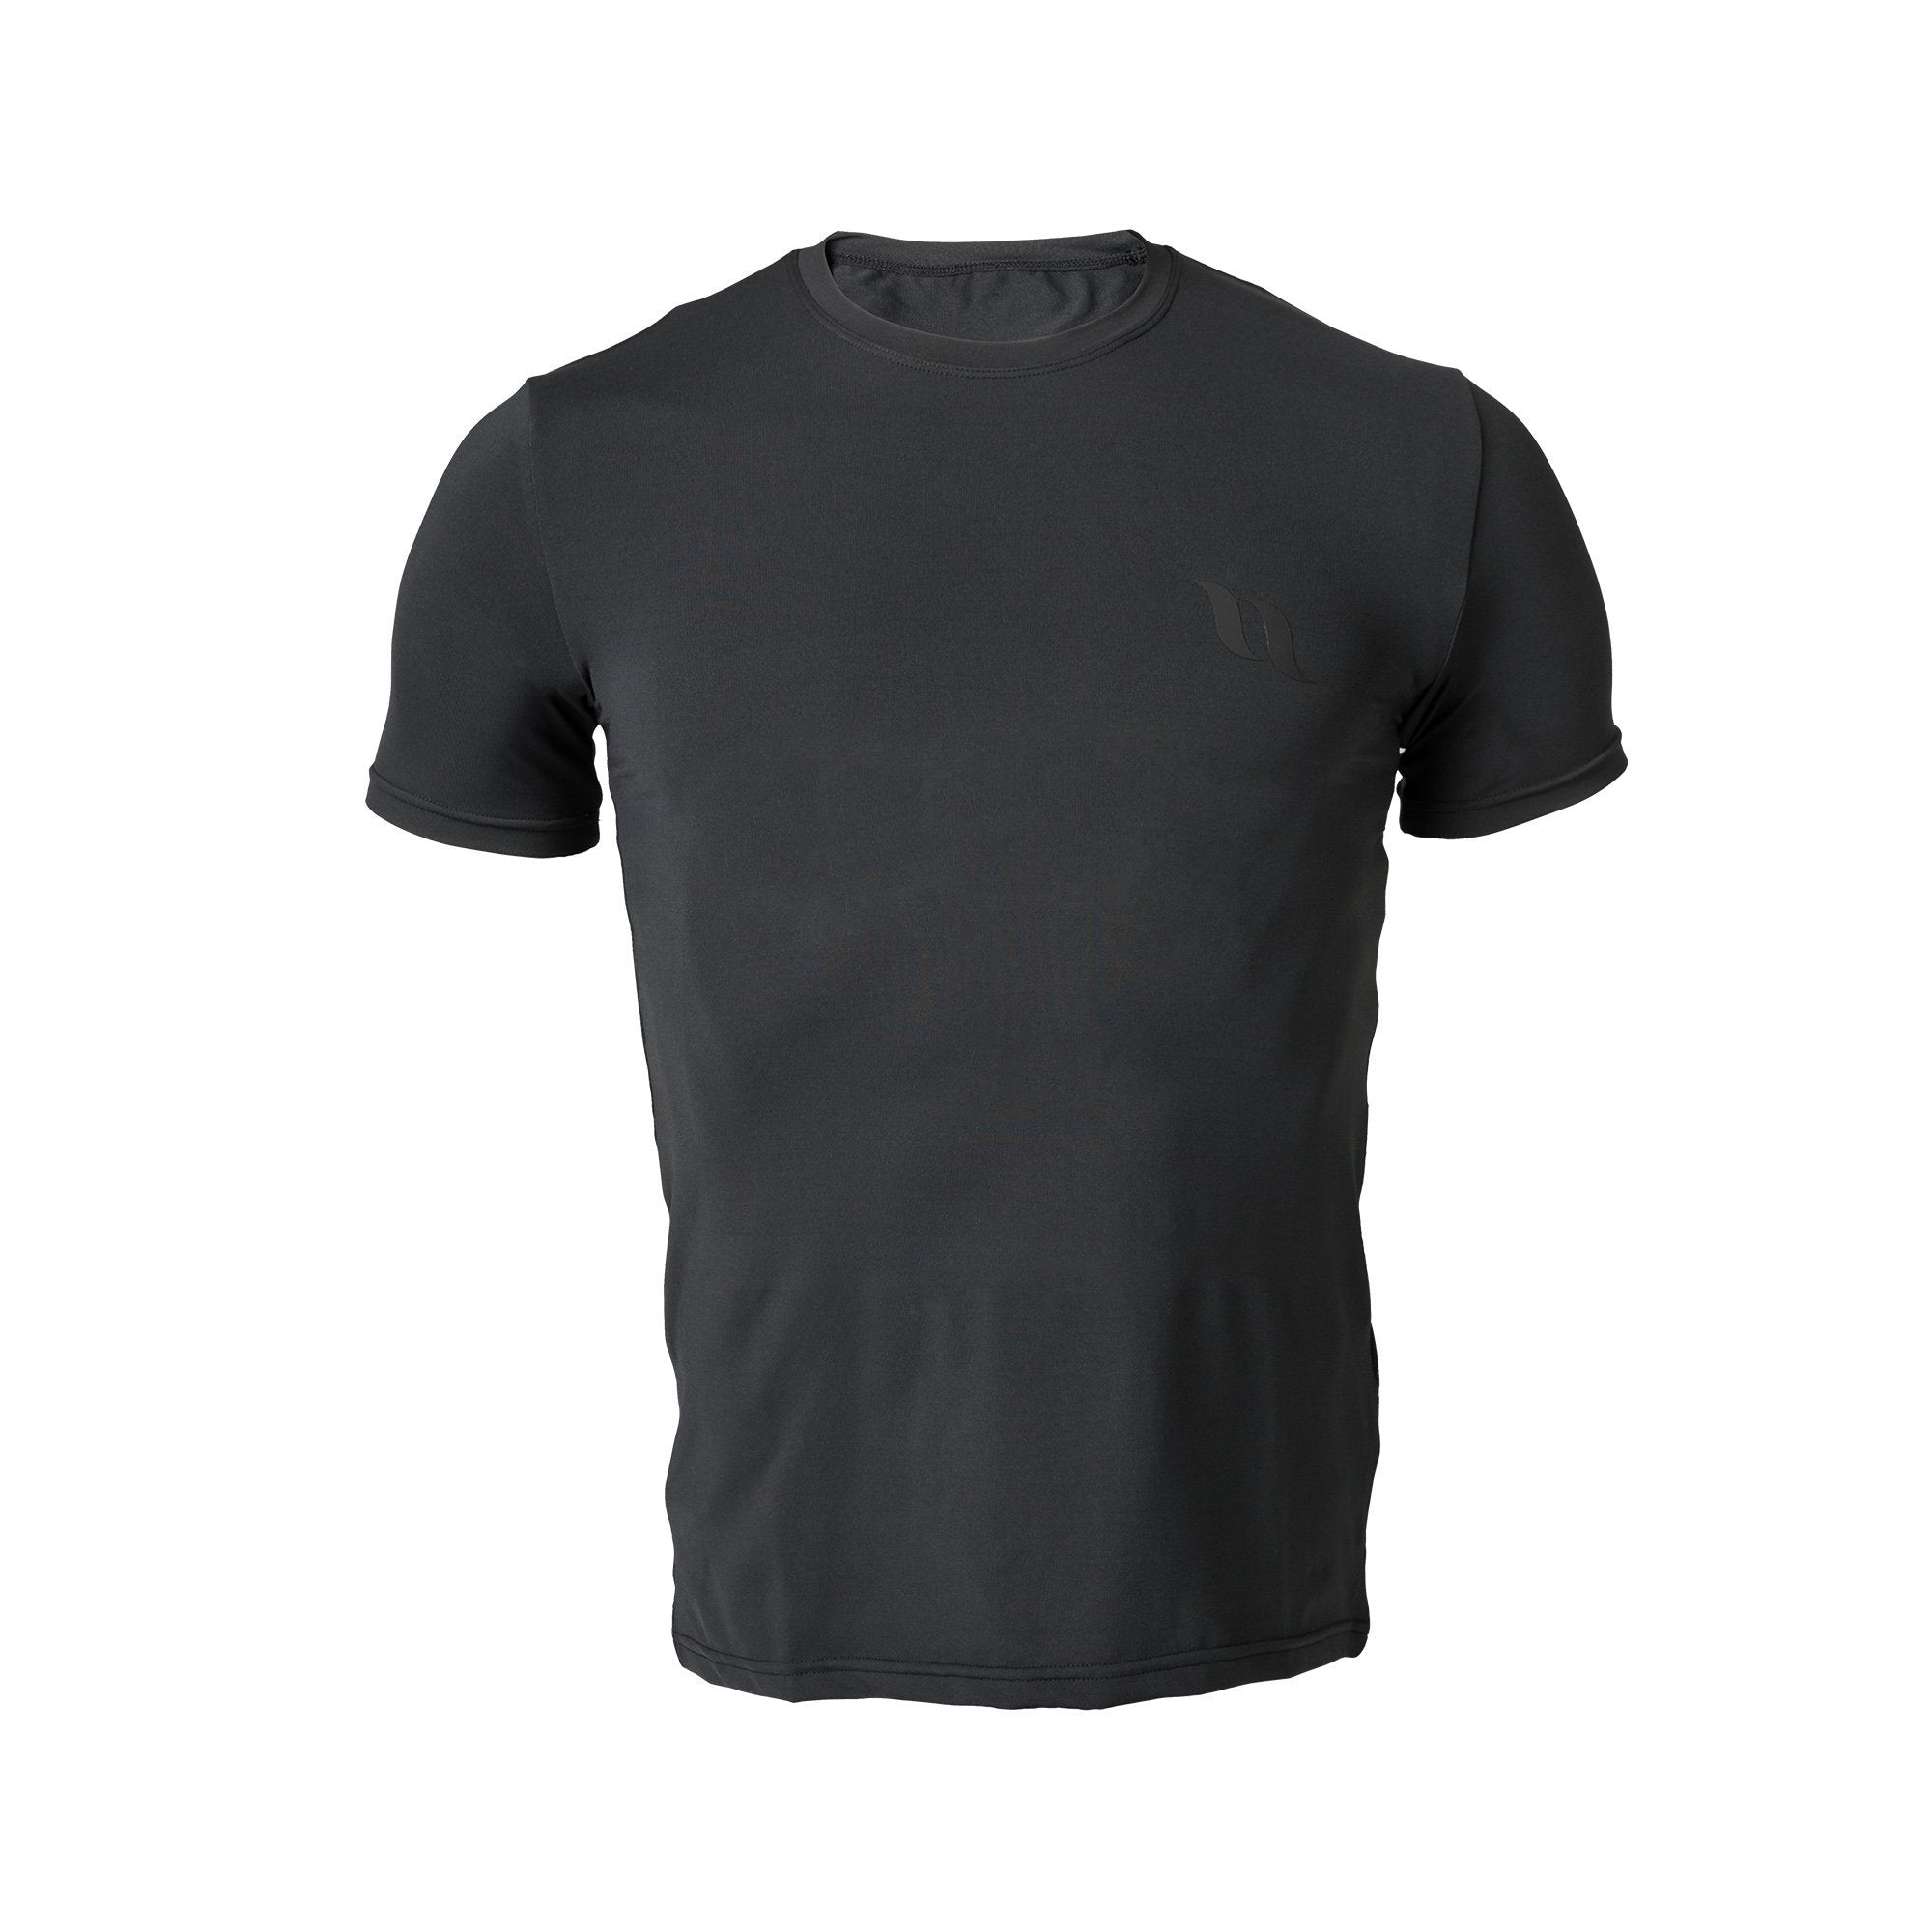 P4G Ian Herr T-shirt - Back on Track Sverige (5300176978075)